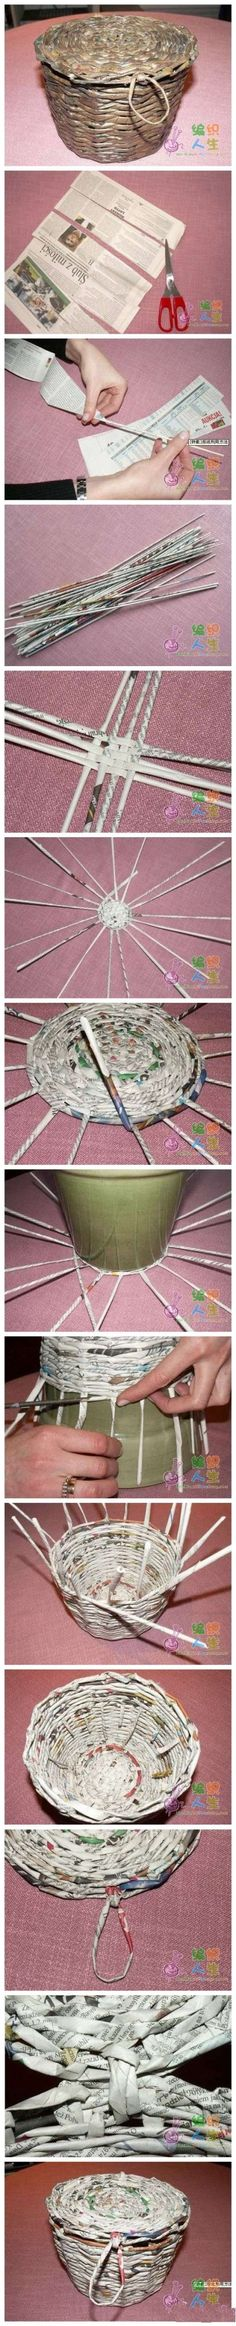 DIY Tutorial: DIY Weaving / DIY newspaper basket making - Bead&Cord Going to try this to make a basket similar to what Moses was placed in. Newspaper Basket, Newspaper Crafts, Diy Arts And Crafts, Fun Crafts, Diy Paper, Paper Crafting, Paper Clay, Diy Projects To Try, Craft Projects